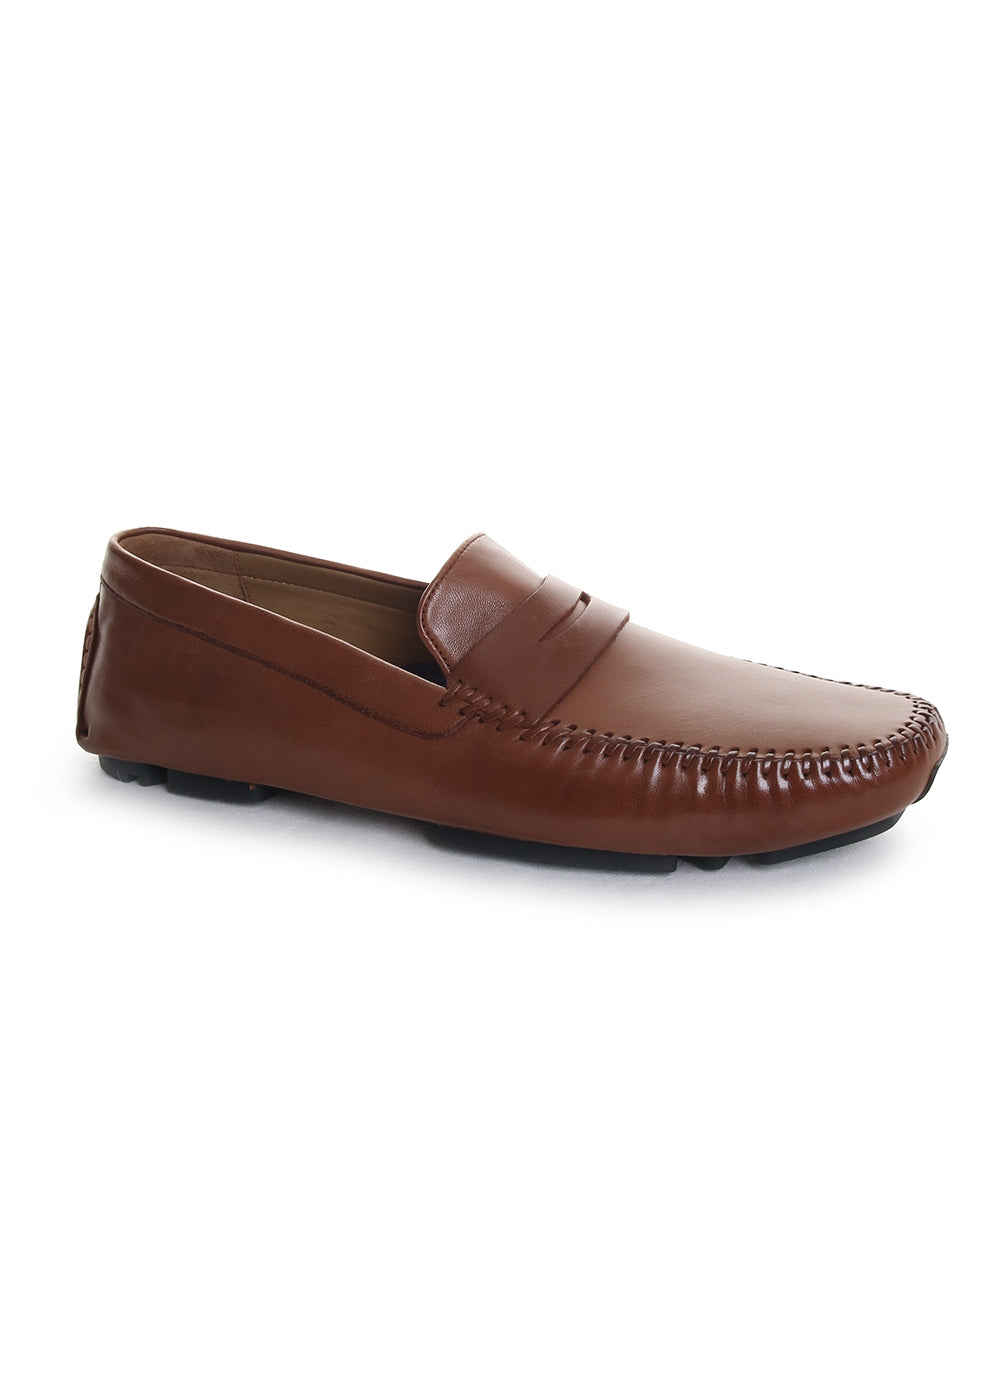 Sven Leather Loafers